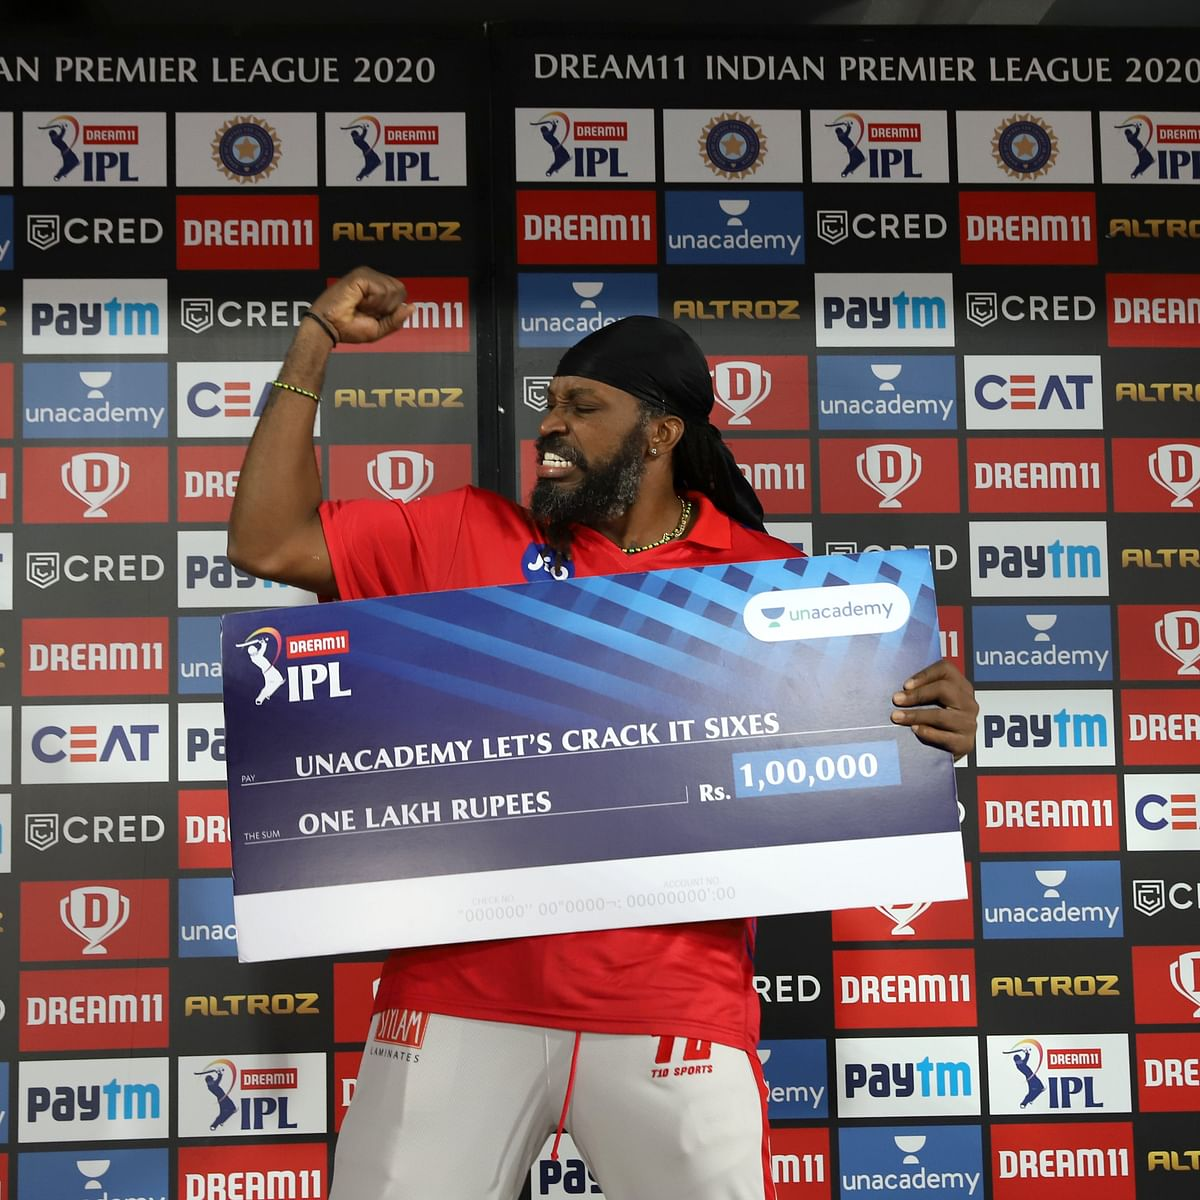 'Universe Boss' Chris Gayle has started most IPL seasons with a bang